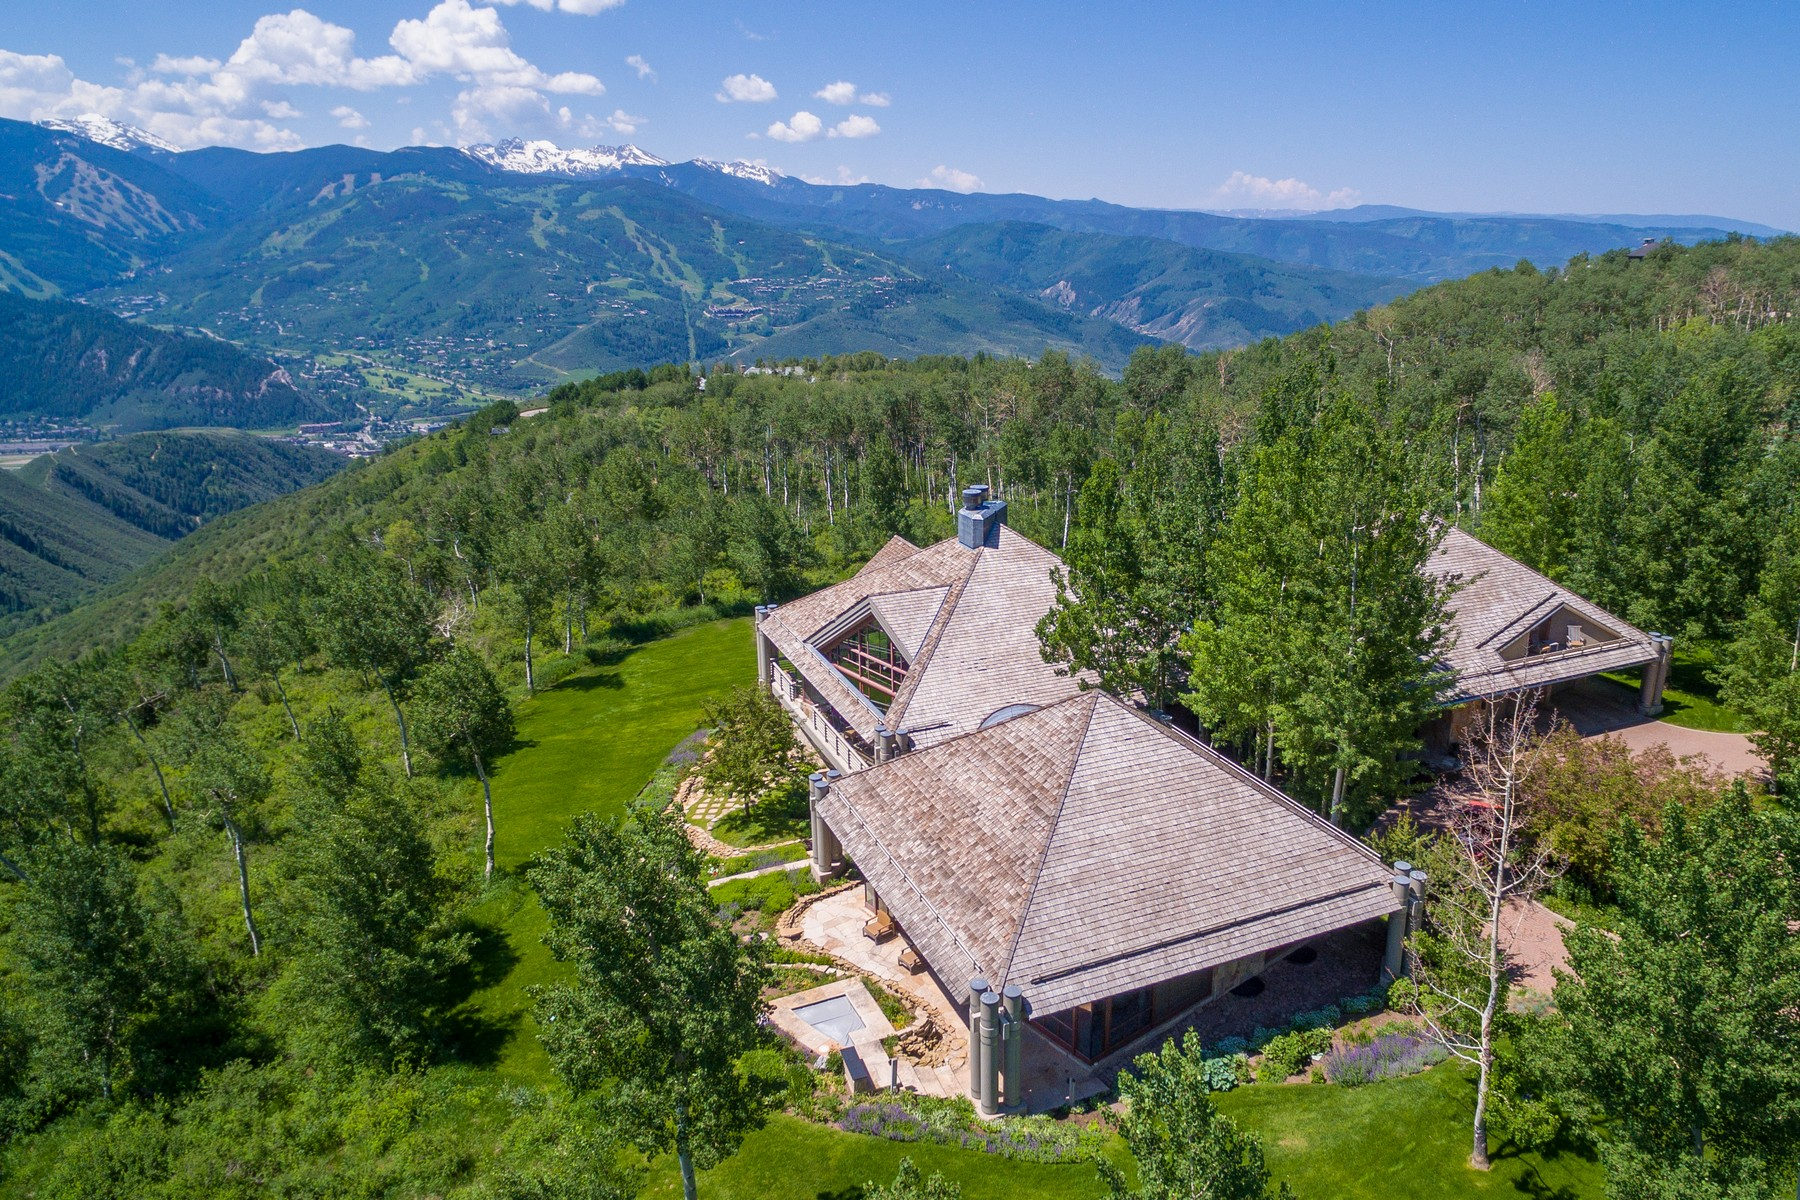 Casa Unifamiliar por un Venta en 56 Rose Crown Beaver Creek, Colorado, 81620 Estados Unidos